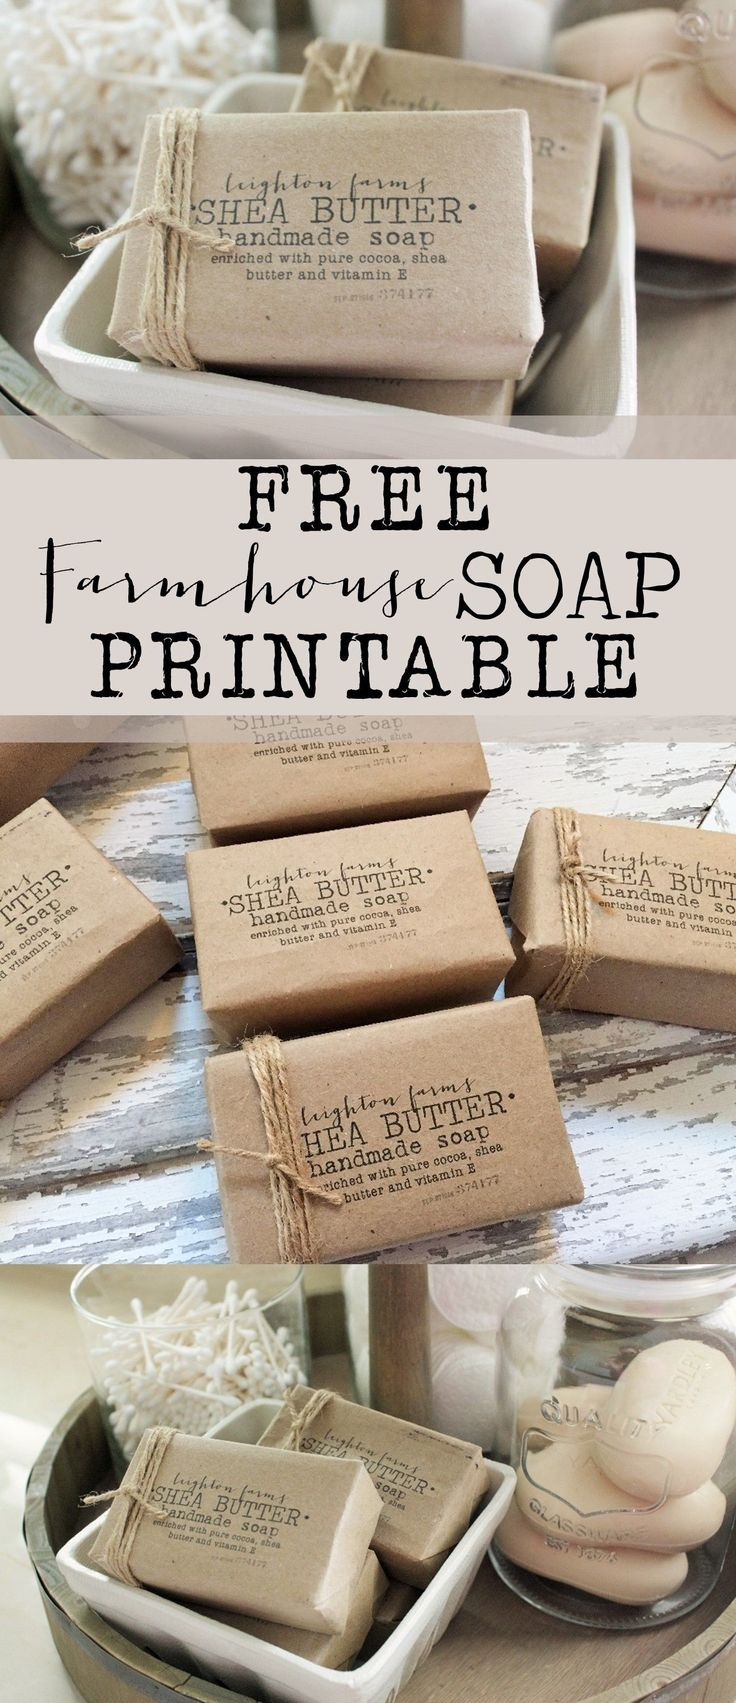 FREE Farmhouse Soap Printable - House of Hargrove Make your own farmhouse/vintage soap label with this free printable! Soap is from the dollar store! Super cute and easy project #soapmaking